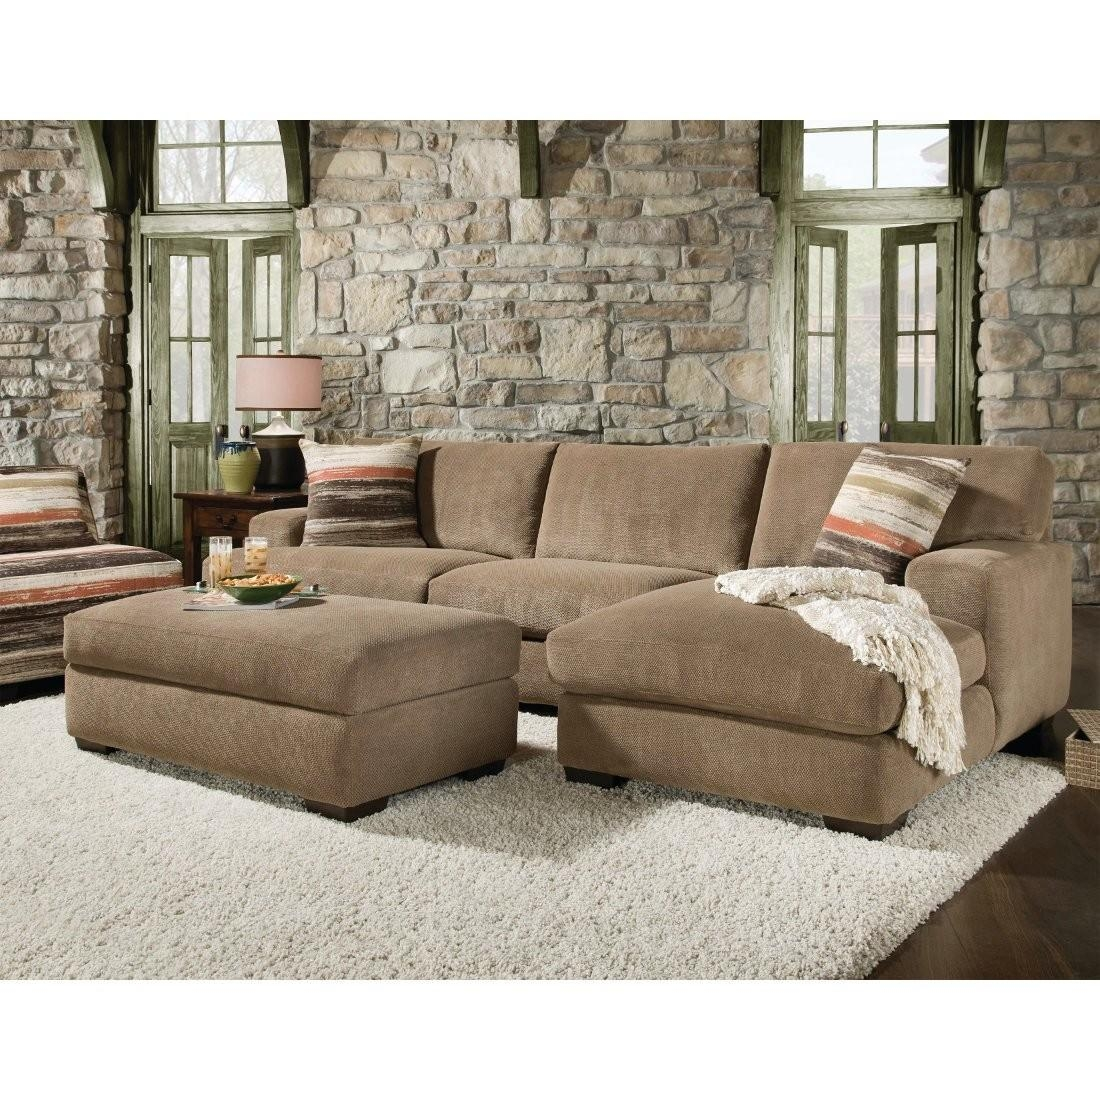 Featured Image of Sofa With Chaise And Ottoman